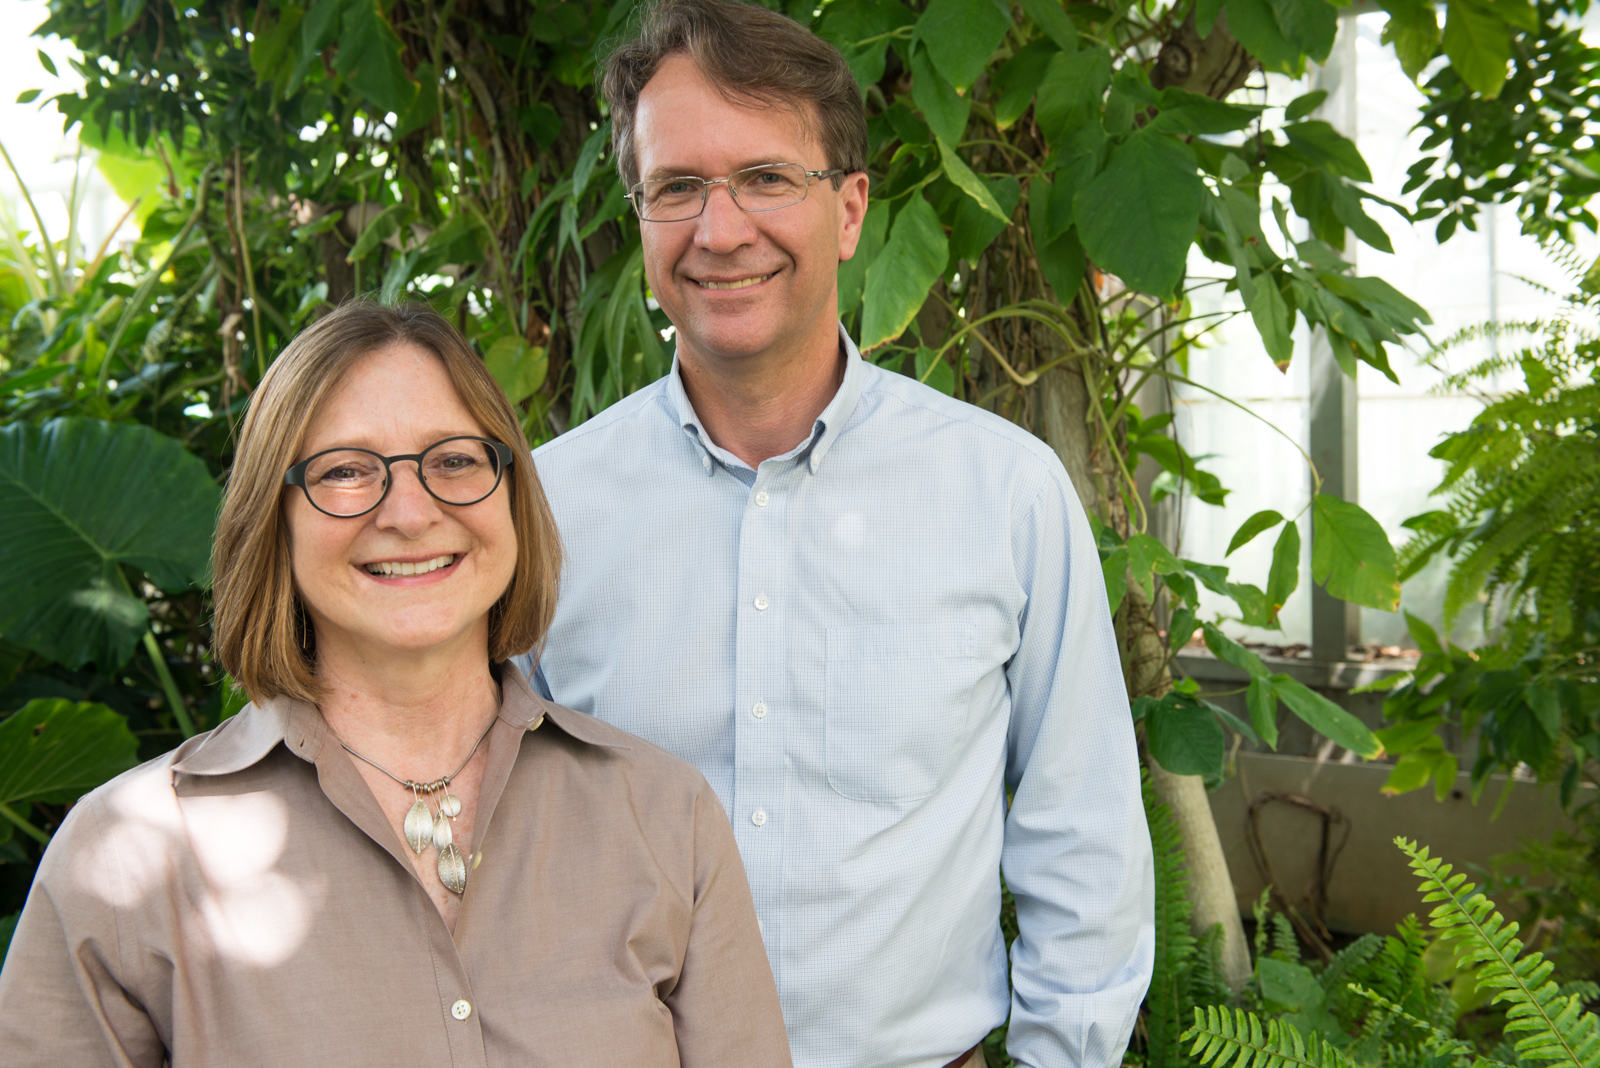 Heidi Appel and Rex Cocroft determined that plants respond to the sounds that caterpillars make when eating plants and that the plants respond with more defenses